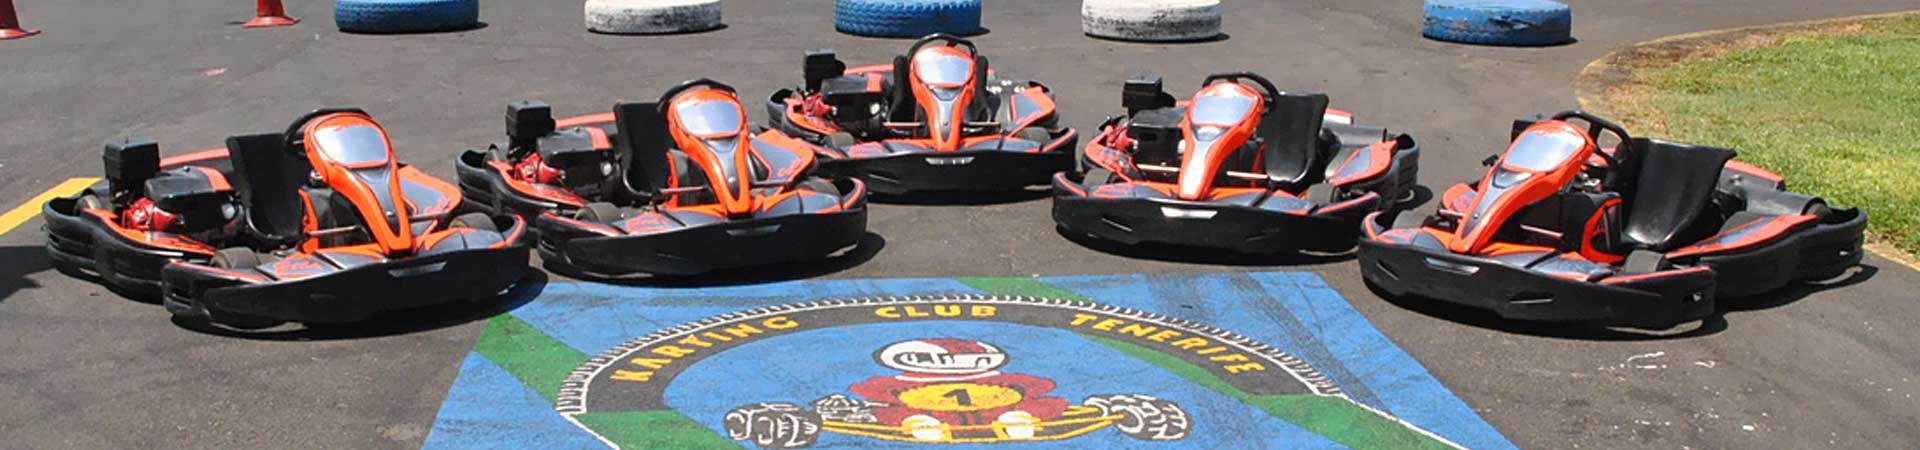 https://www.goodmorningtenerife.com/wp-content/uploads/2015/03/03_karting-club-tenerife-1920x450.jpg